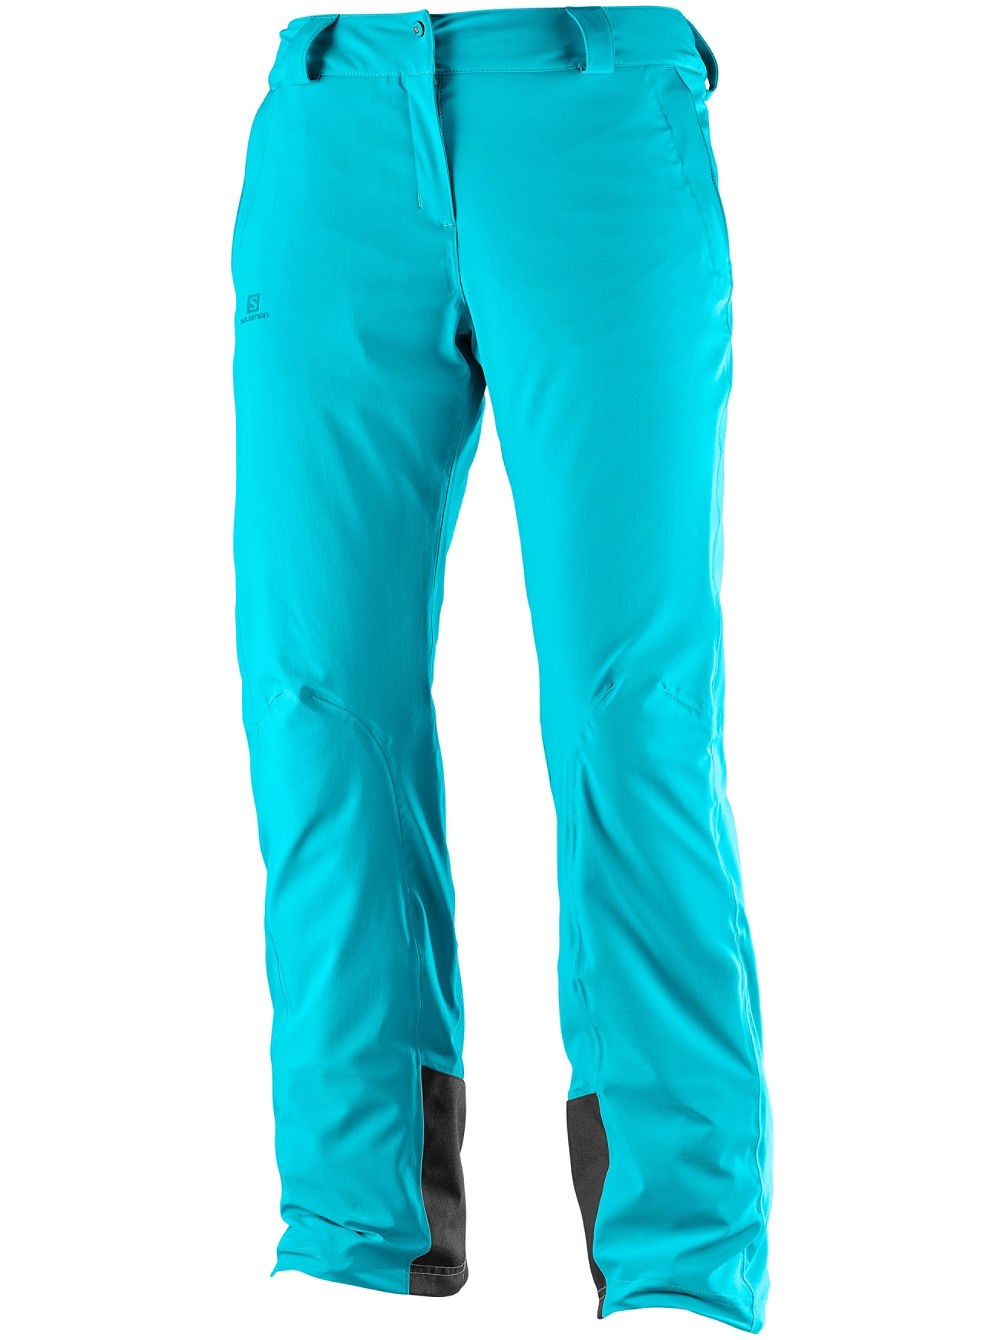 Icemania Pants Short